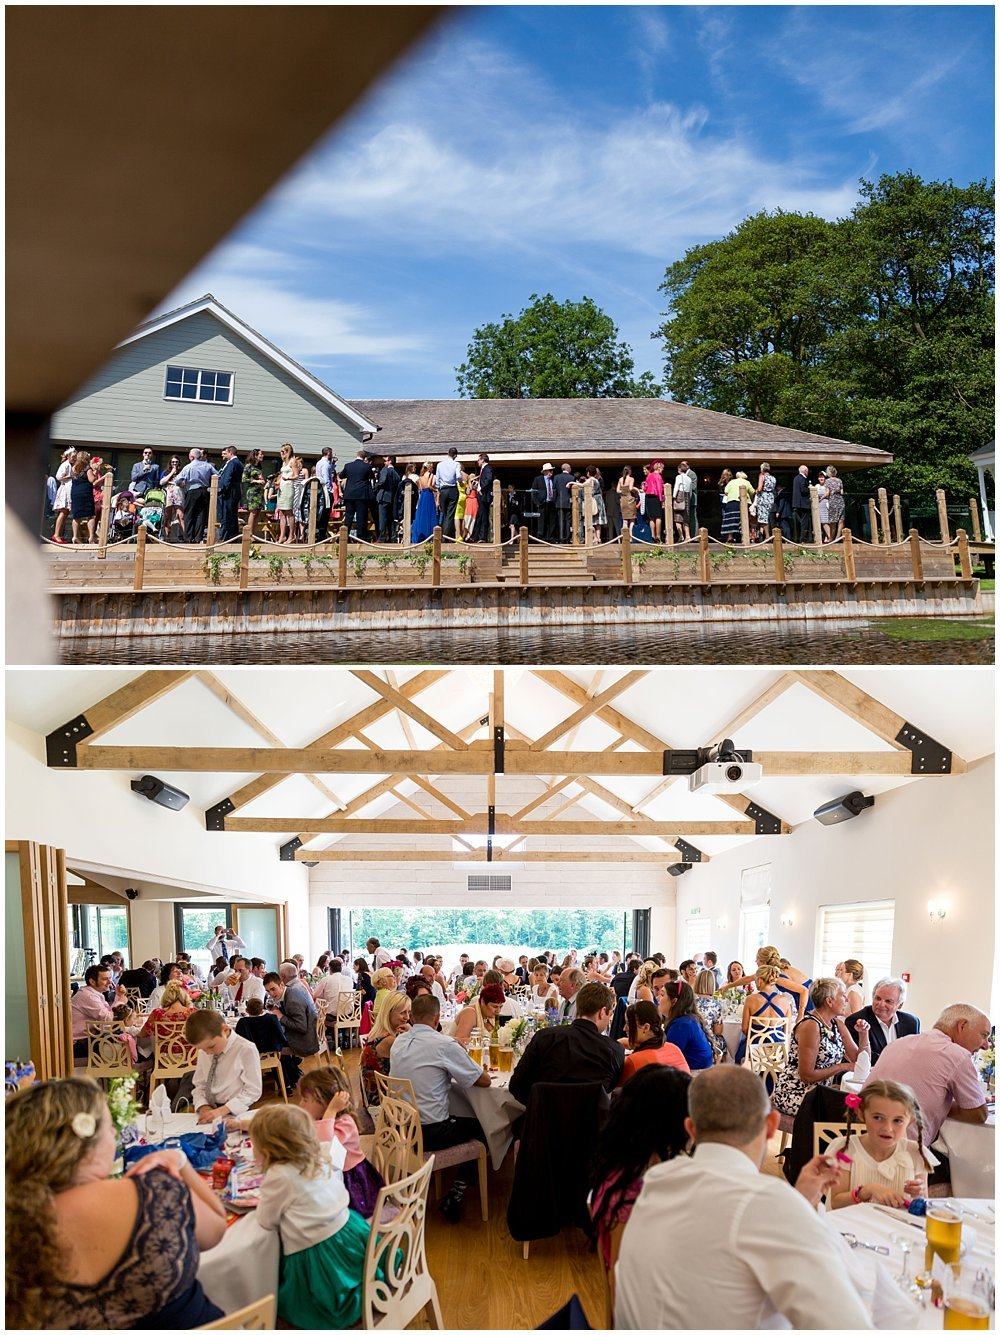 AMY AND DUNCAN NORWICH CATHEDRAL AND THE BOATHOUSE WEDDING - NORWICH AND NORFOLK WEDDING PHOTOGRAPHER 41